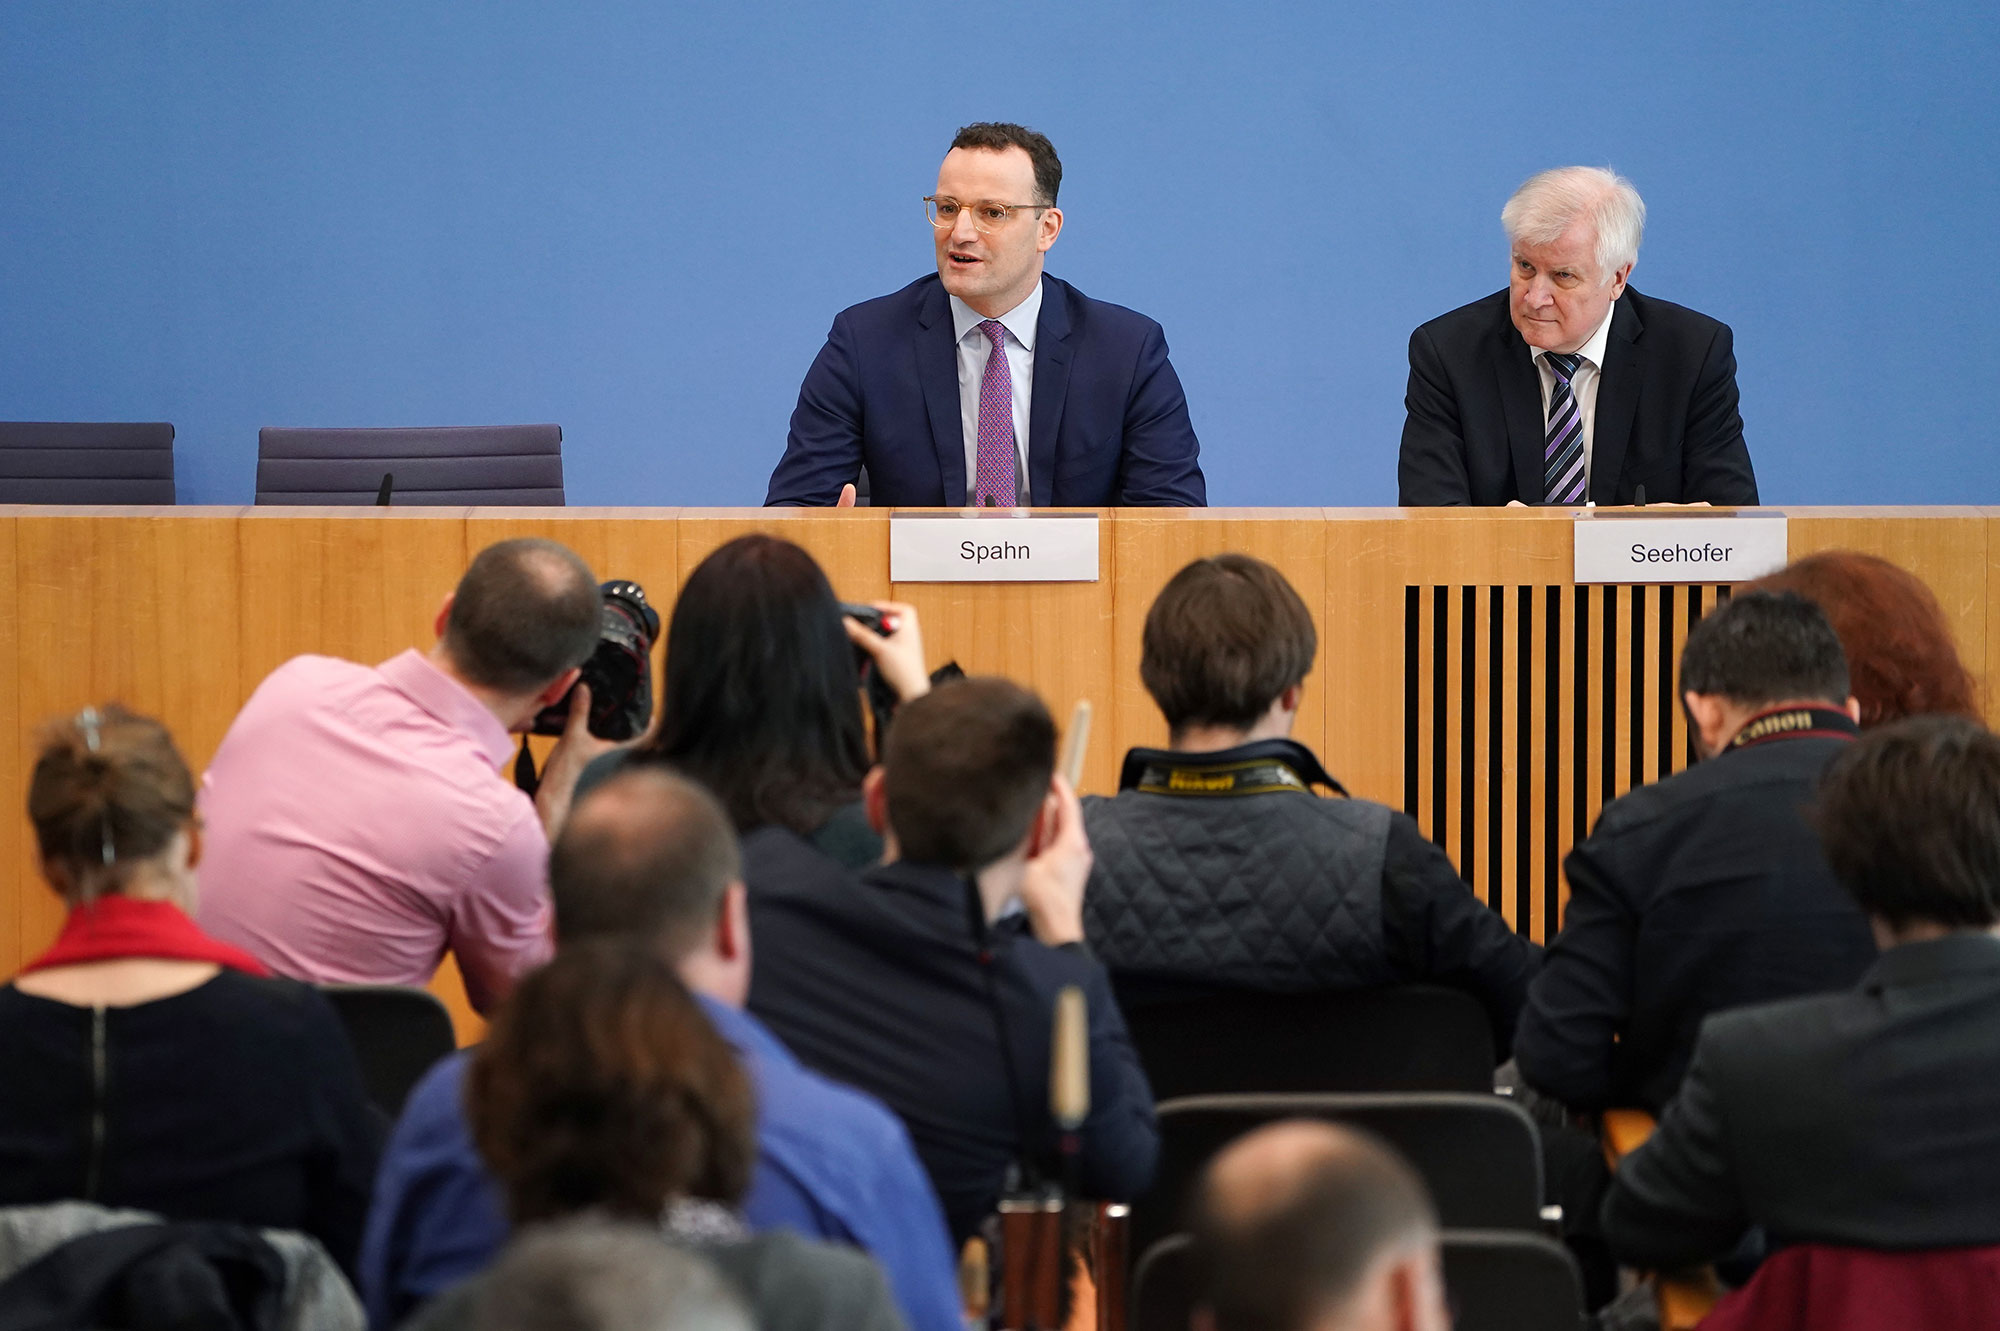 GermanHealth Minister Jens Spahn and Interior Minister Horst Seehofer speak to the media about the spread of the coronavirus in Germany on February 27.